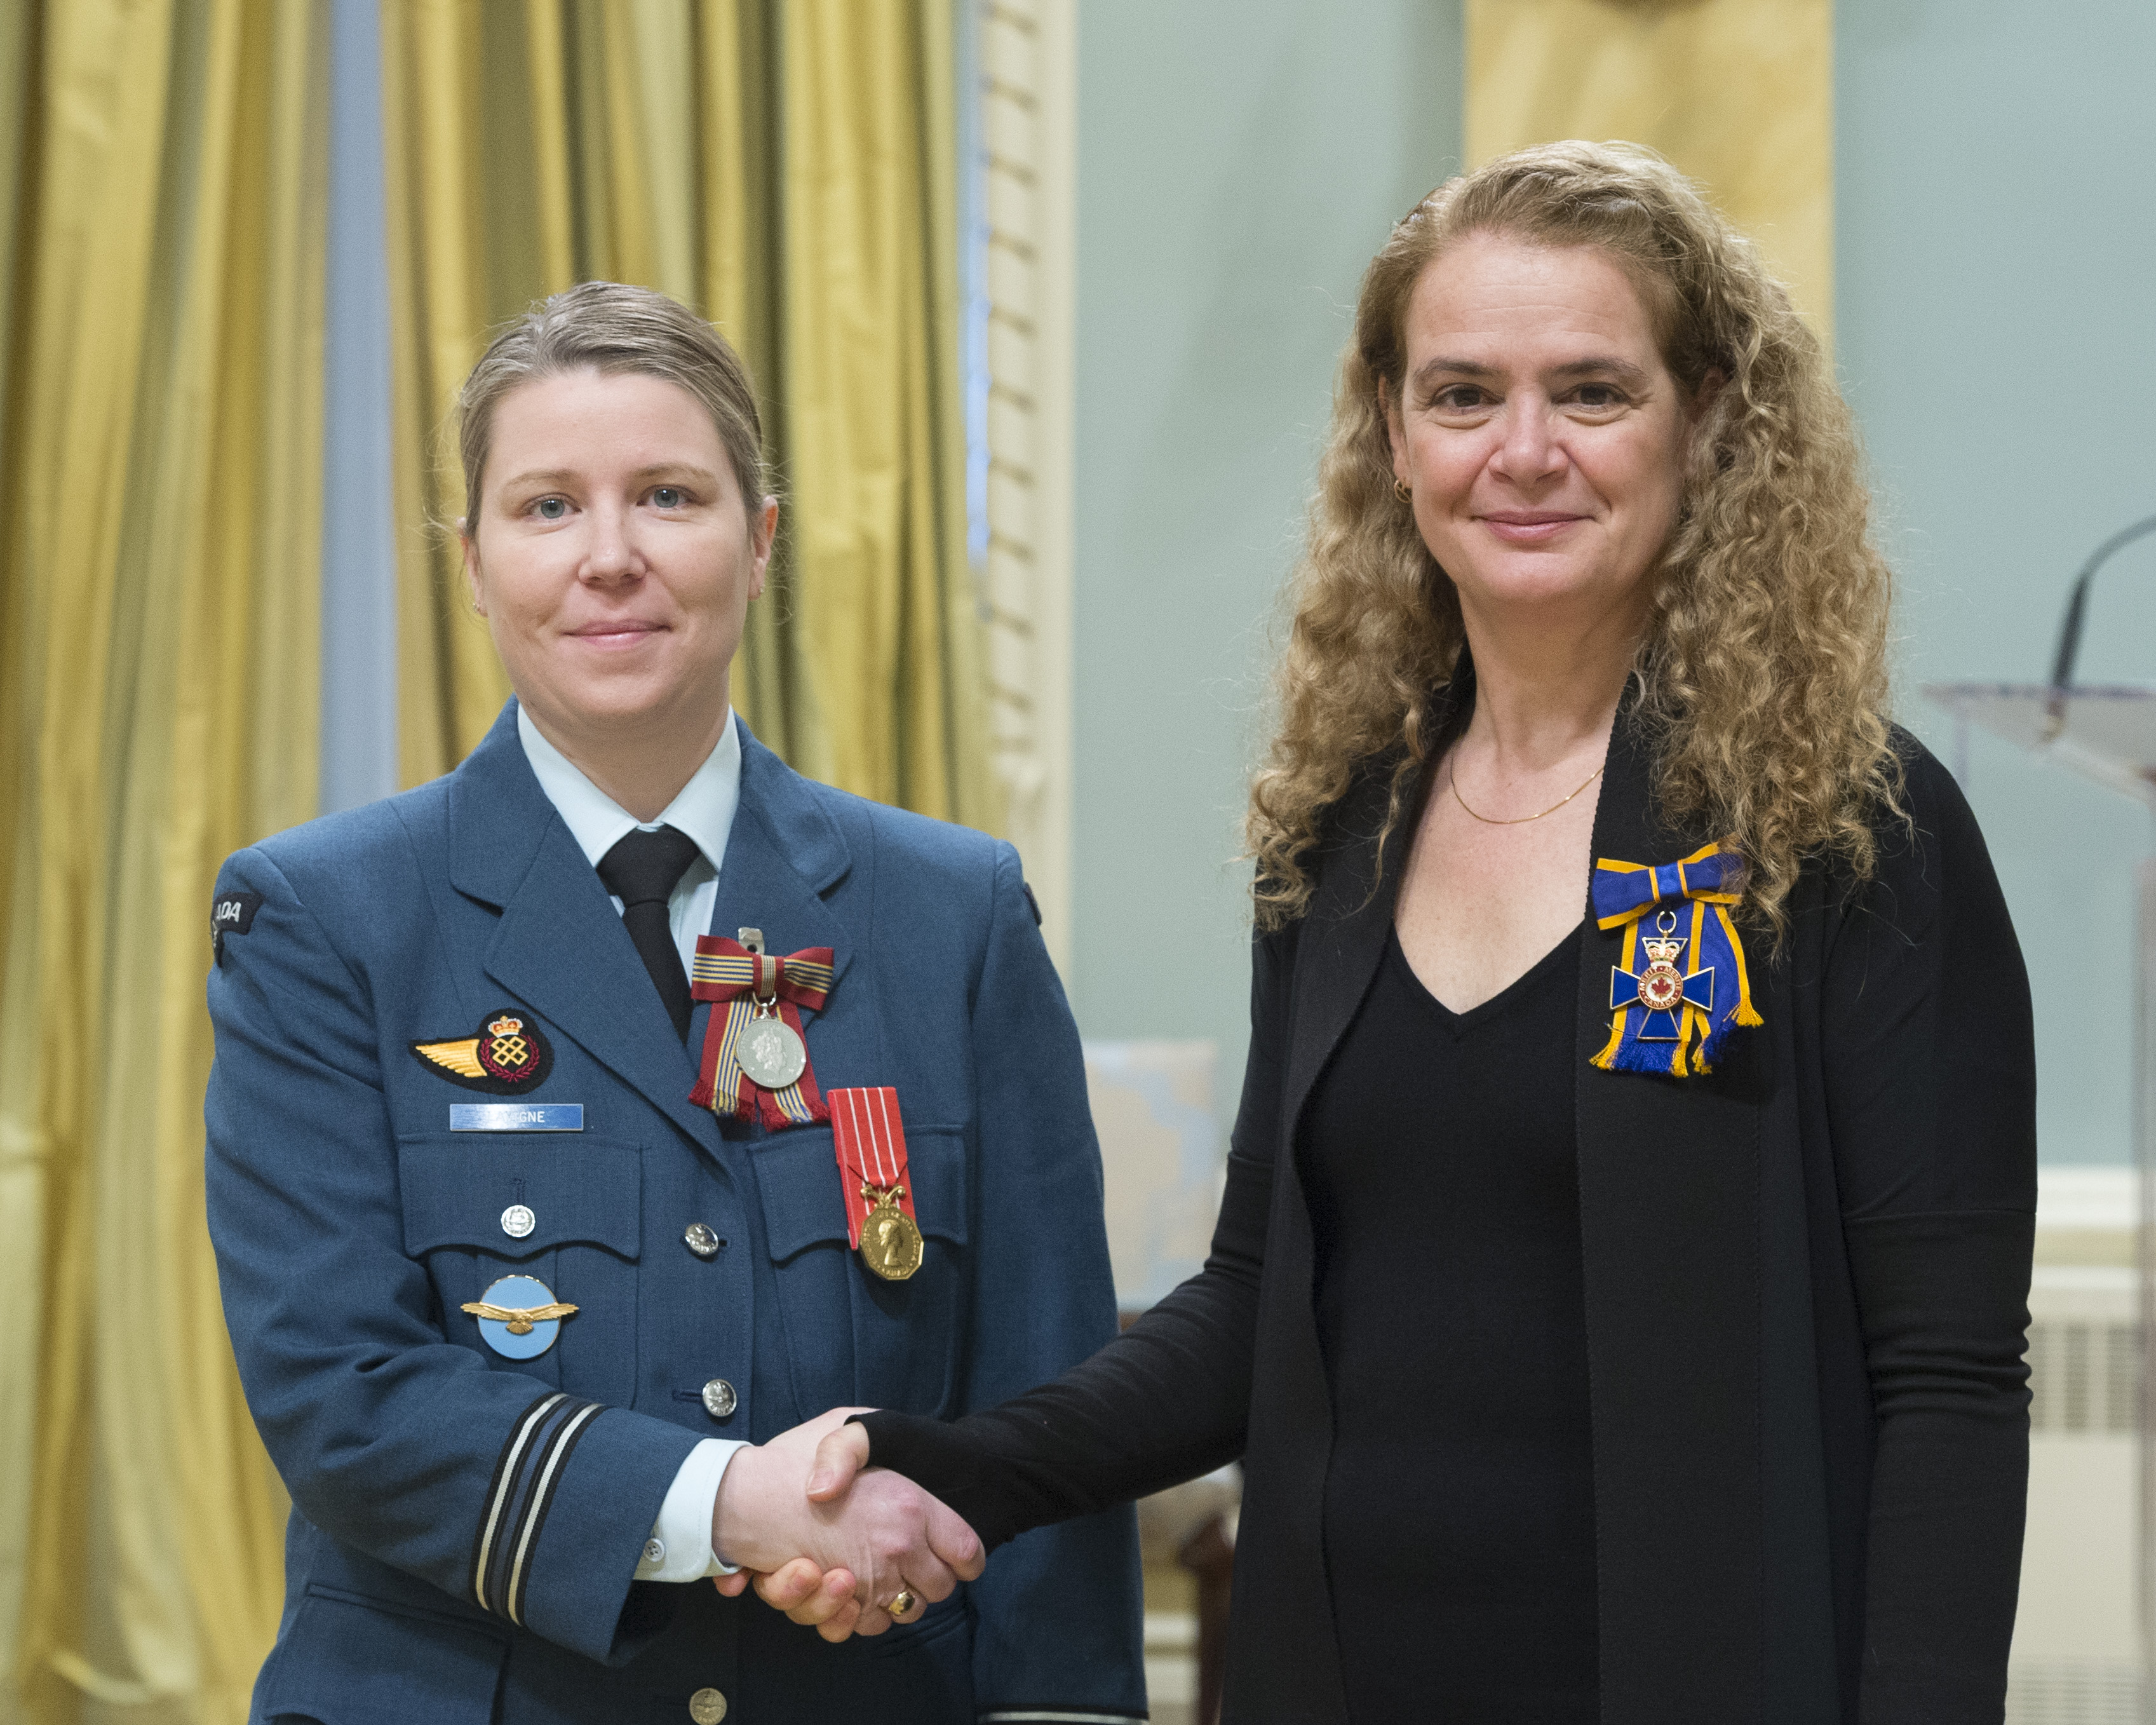 Captain Brenna Lavigne receives the Sovereign's Medal for Volunteers from Governor General and Commander-in-Chief of Canada Julie Payette on February 28, 2018. PHOTO: Sergeant Johanie Maheu, GG05-2018-0066-061